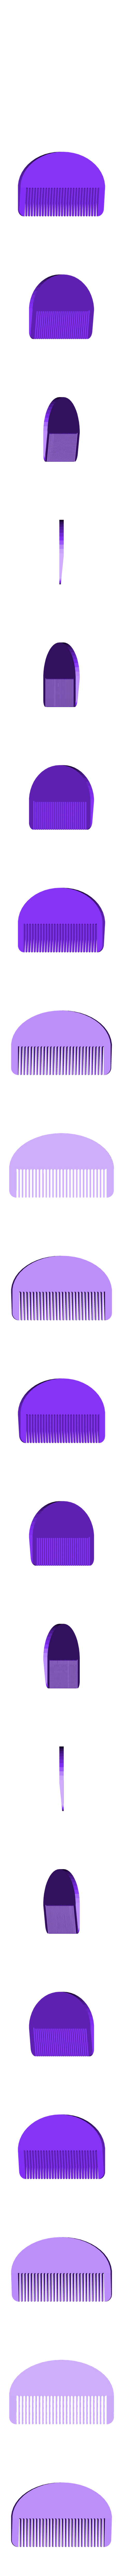 customized_beard_comb_no3.stl Download free STL file Customizable Comb • 3D printable model, MightyNozzle